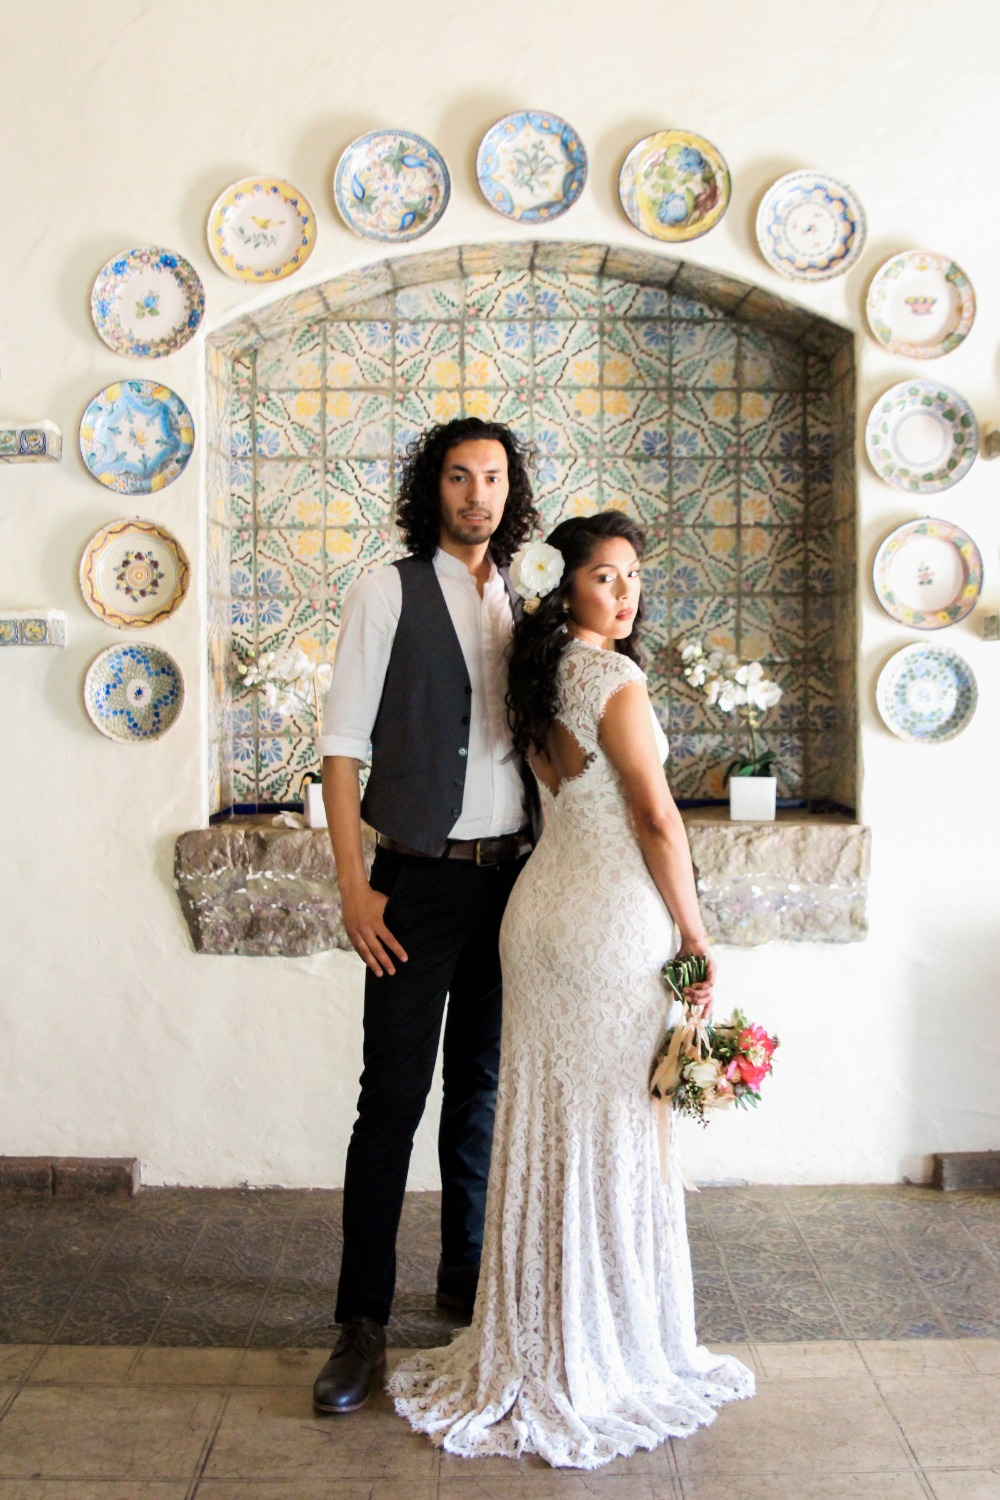 Beautiful old world Mexico wedding inspiration